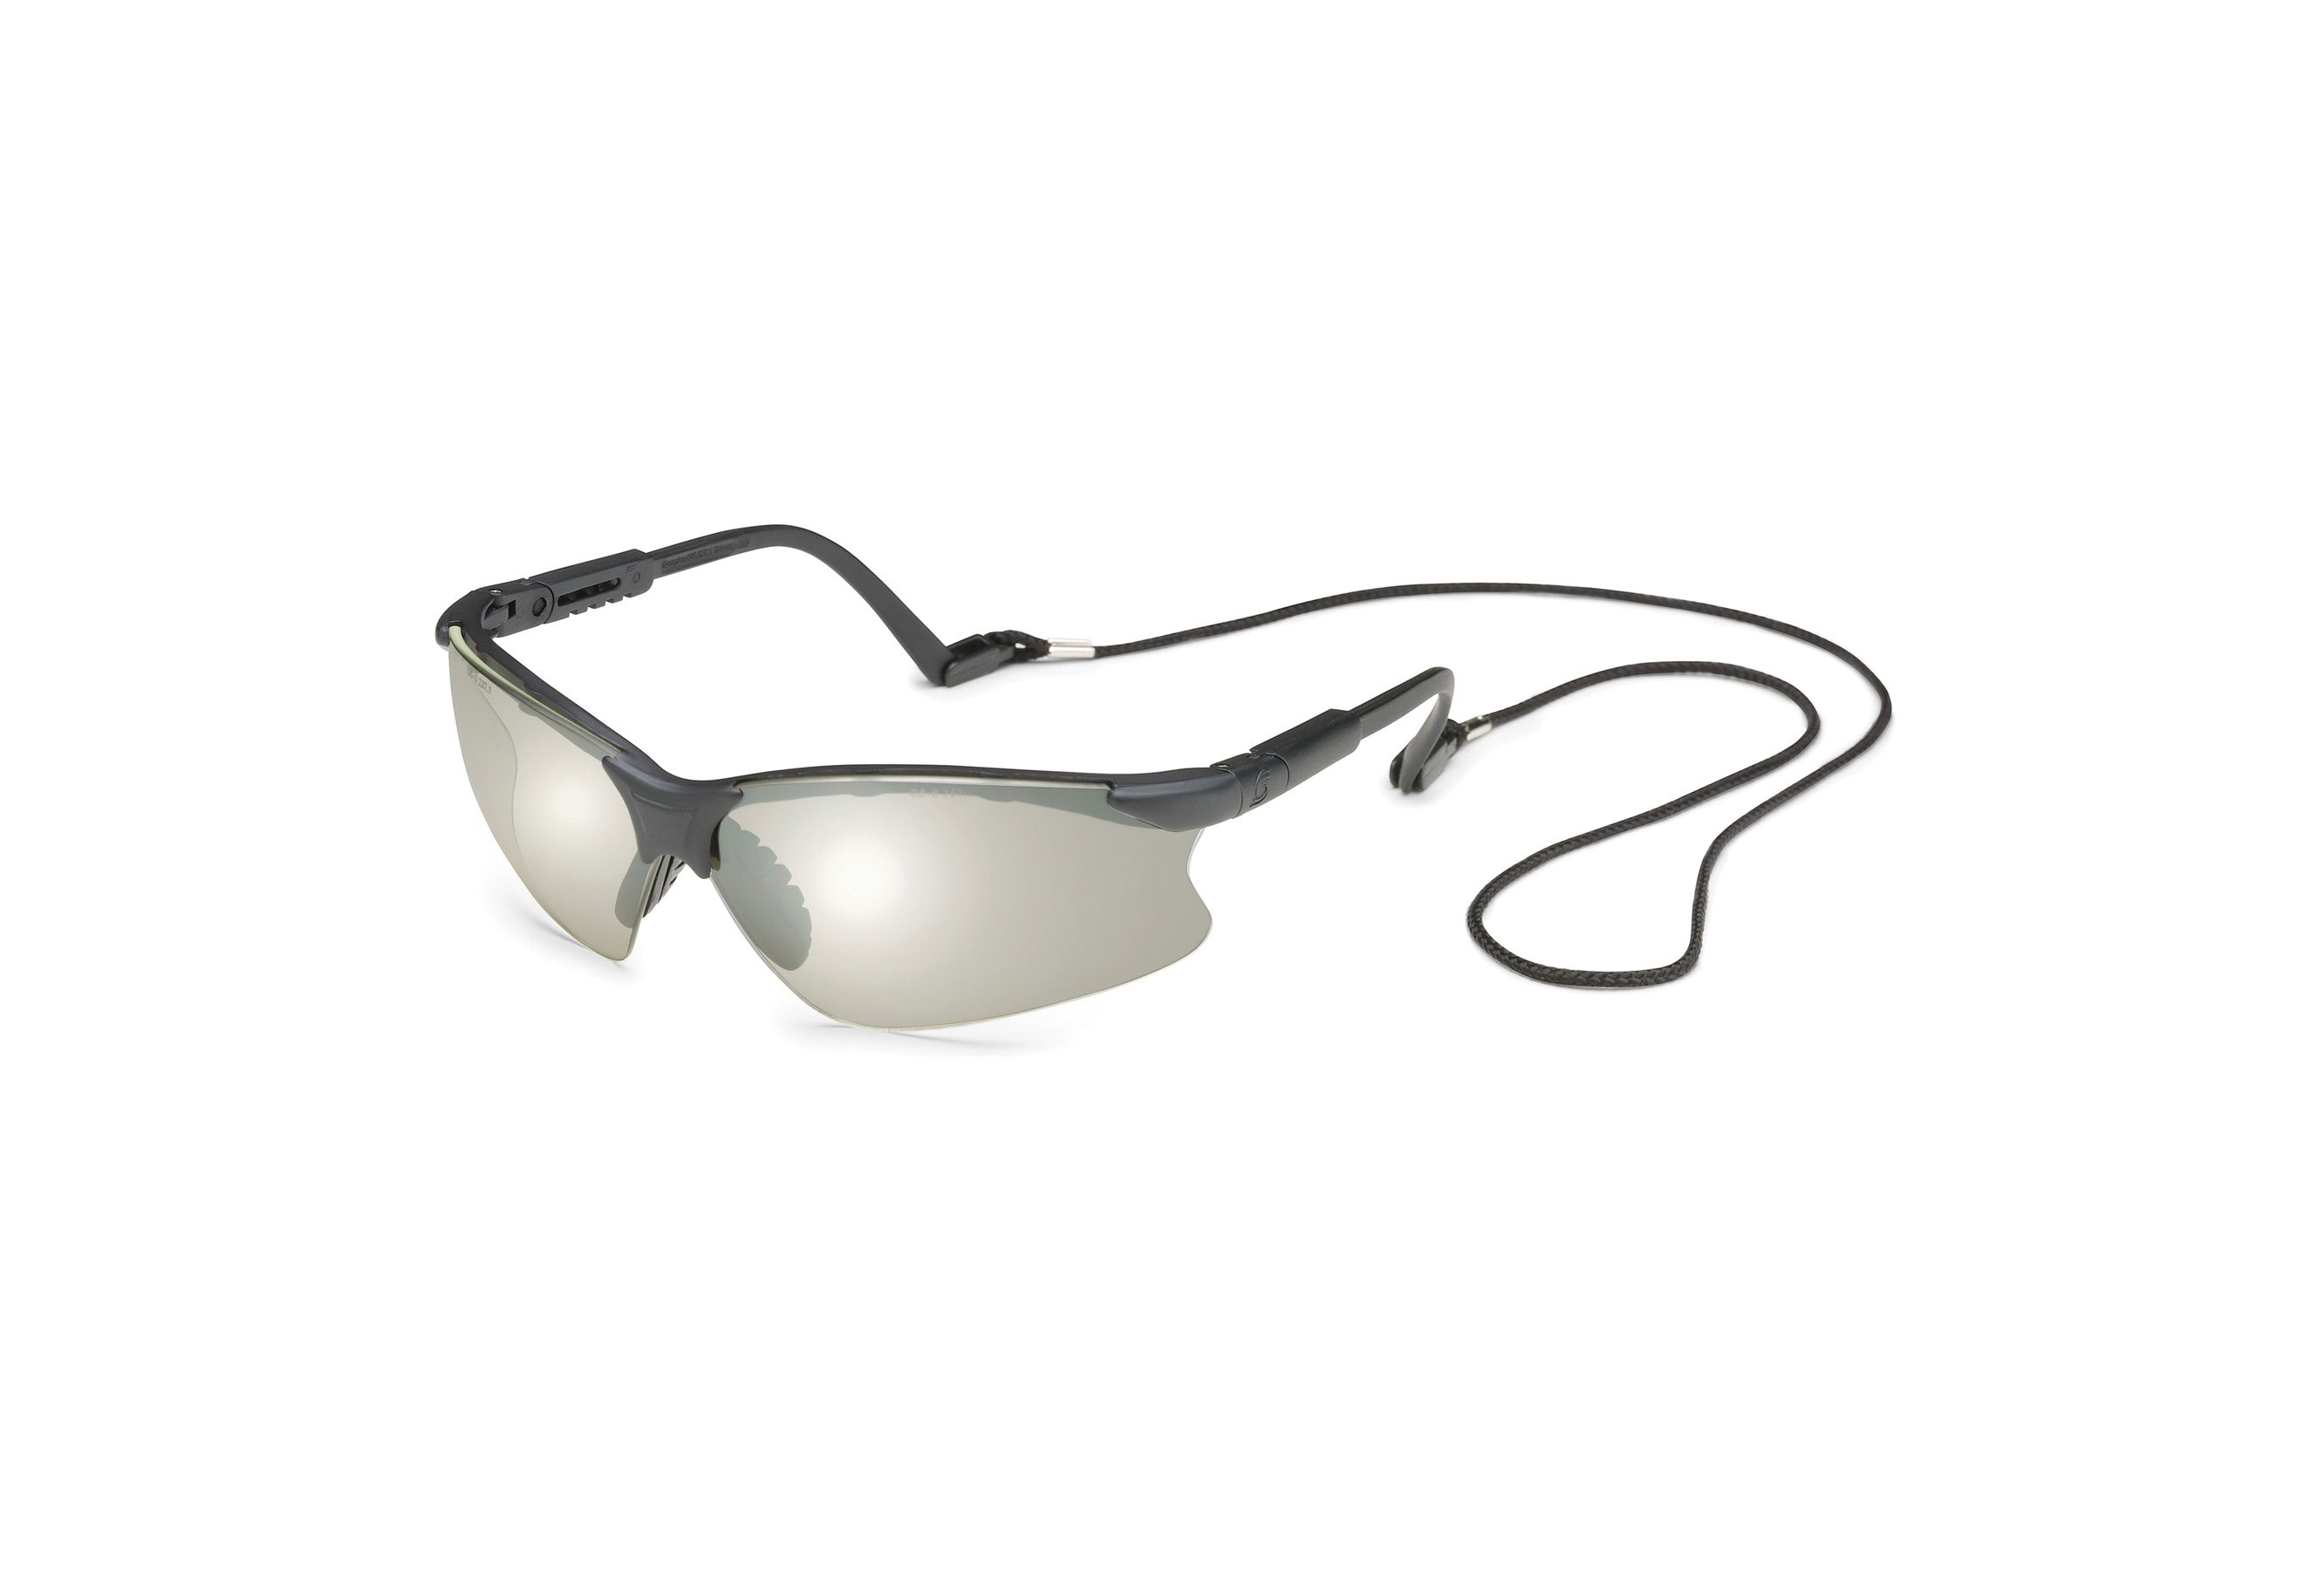 Gateway Safety Inc.'s Scorpion safety glasses